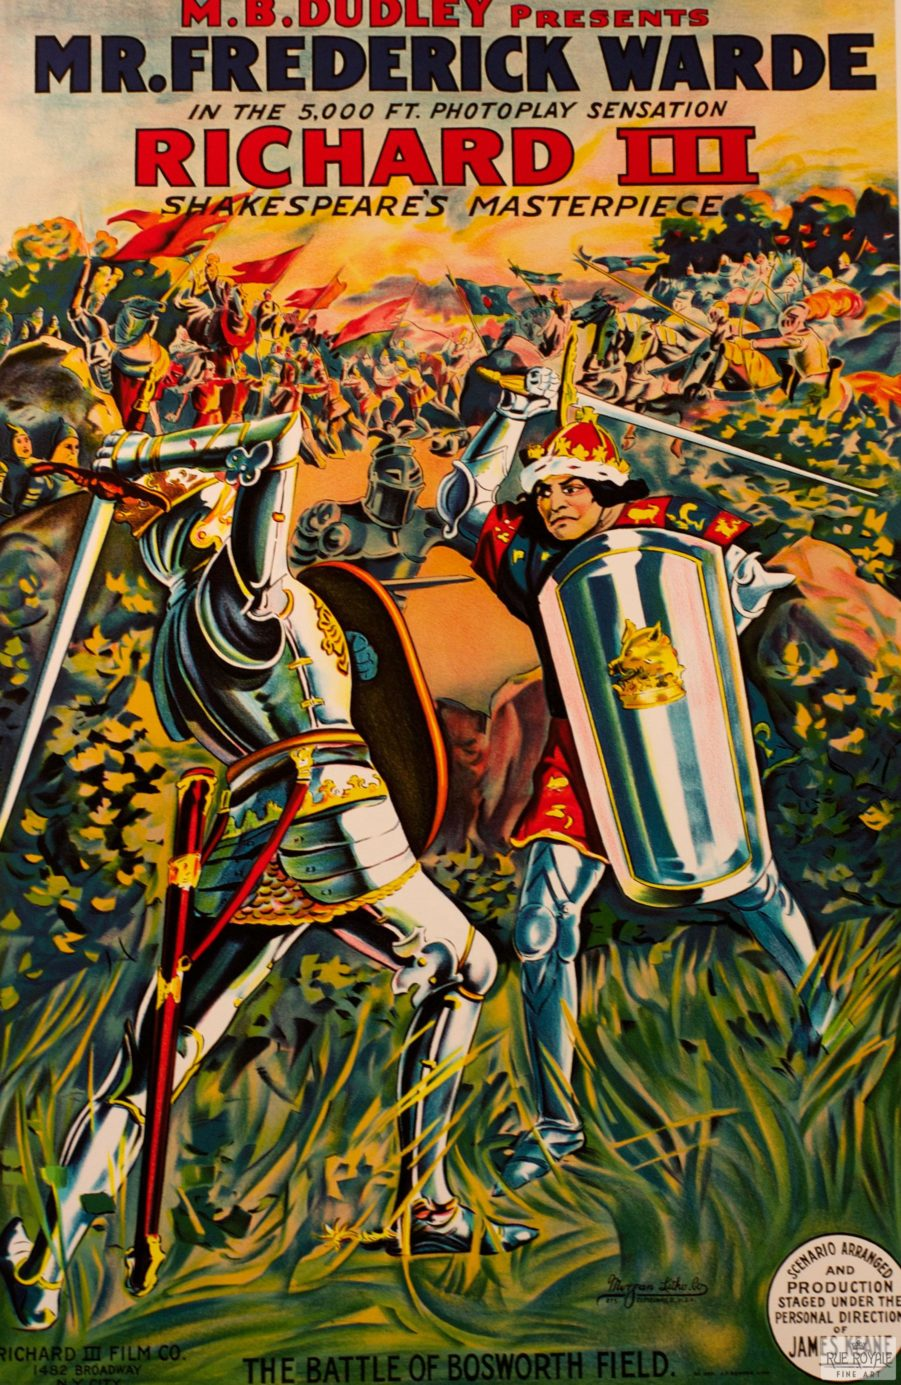 fine art lithograph Richard III frederick Ward classic movie poster vintage movie poster fine art lithograph one-sheet golden age of film